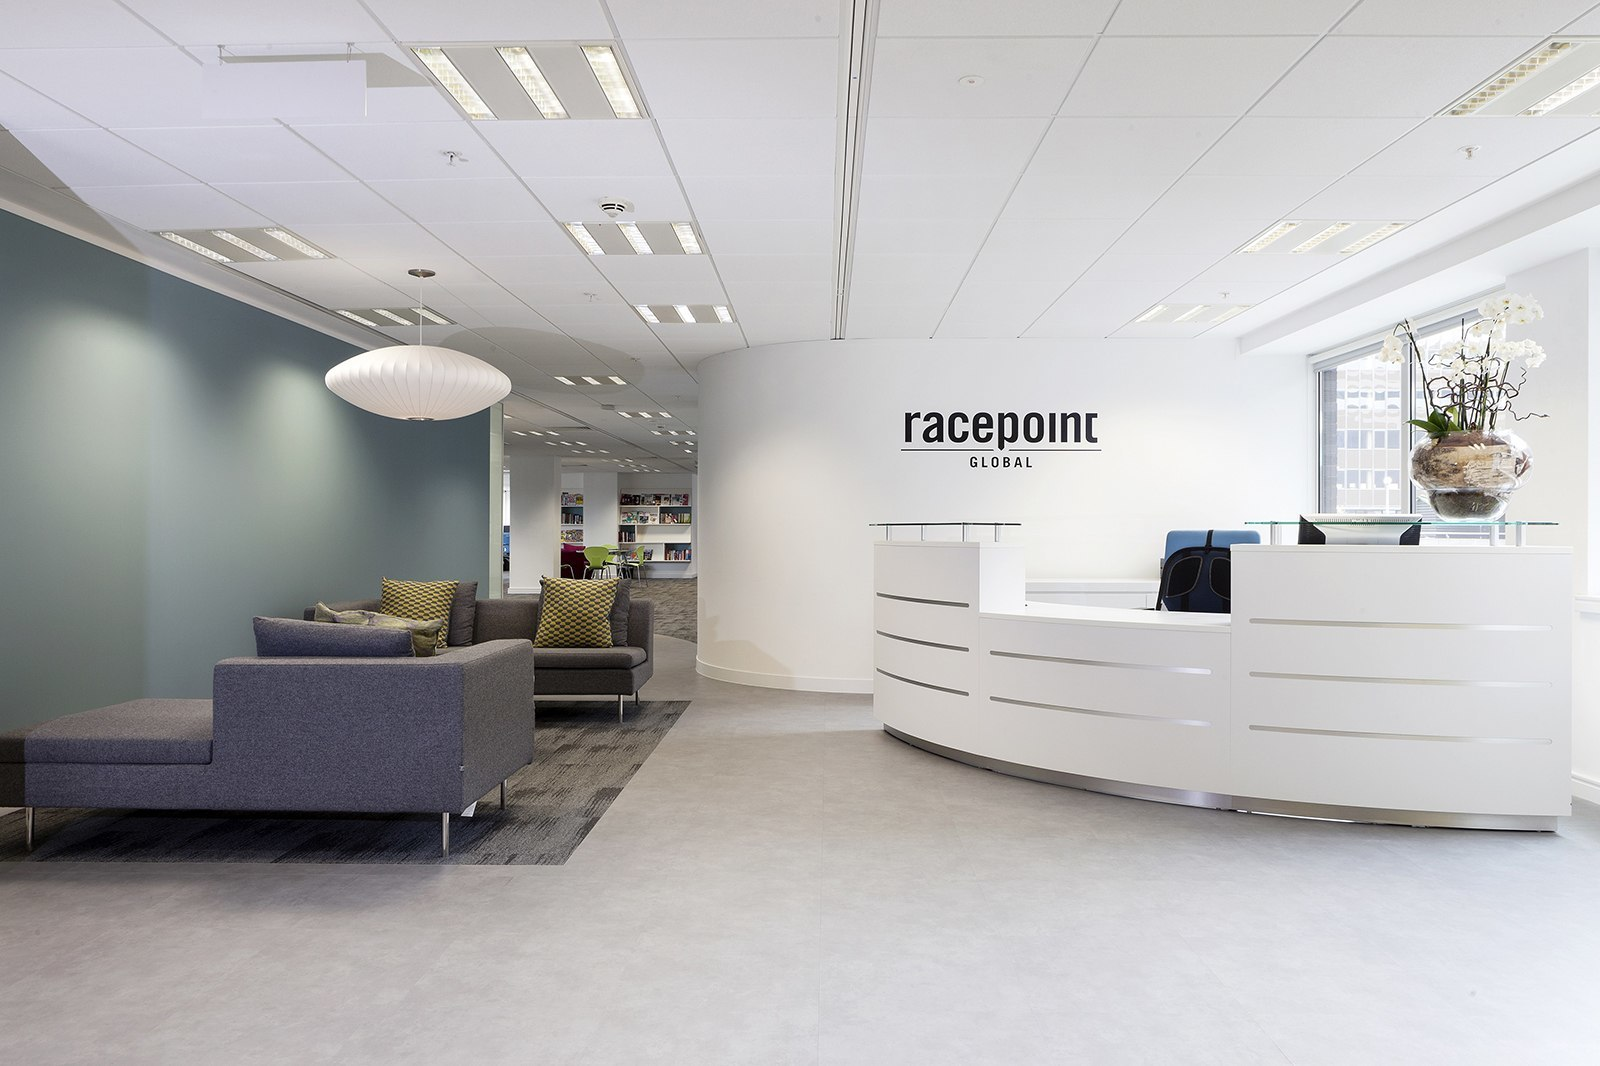 ����� ����� ����� ������ ���� racepoint-global-off